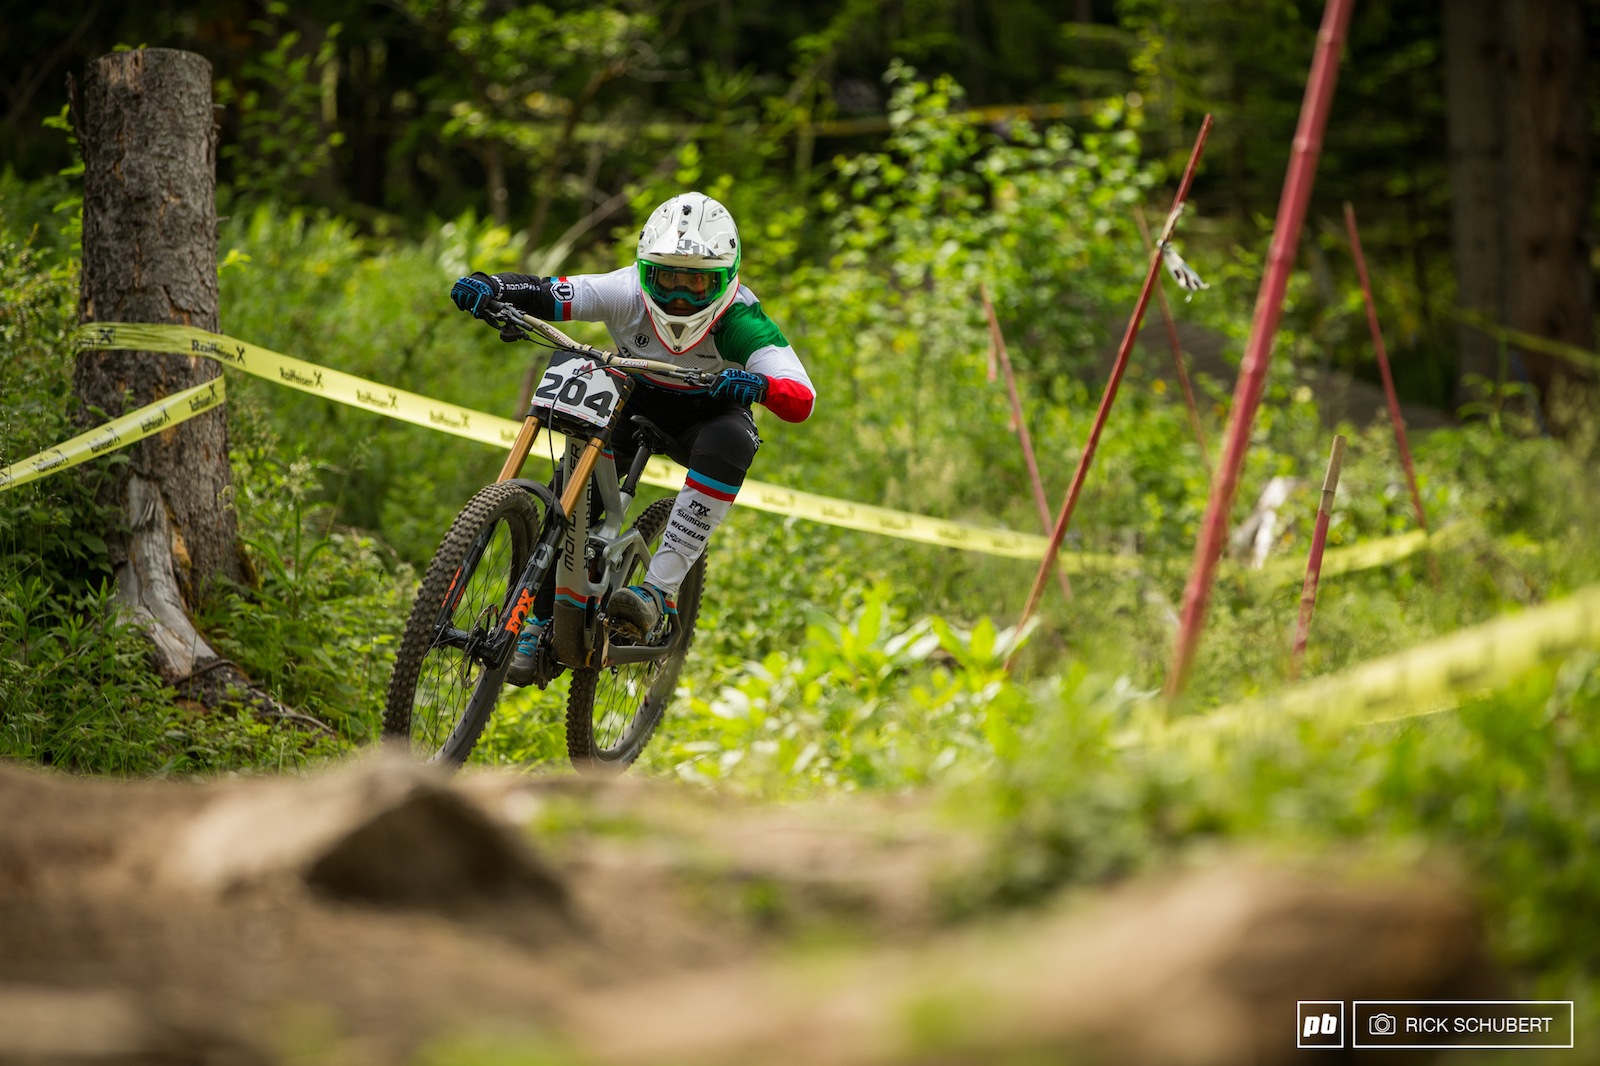 Eleonora Farina was always seen following her team mates of MS Mondraker in practice. She came in 5th